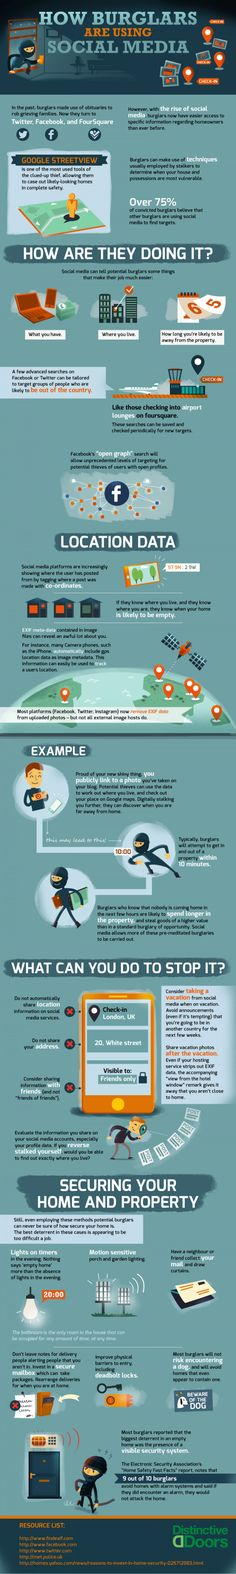 You may want to think twice about showing off those vacay photos while you're away! How Burglars Are Using Social Media #INFOGRAPHIC